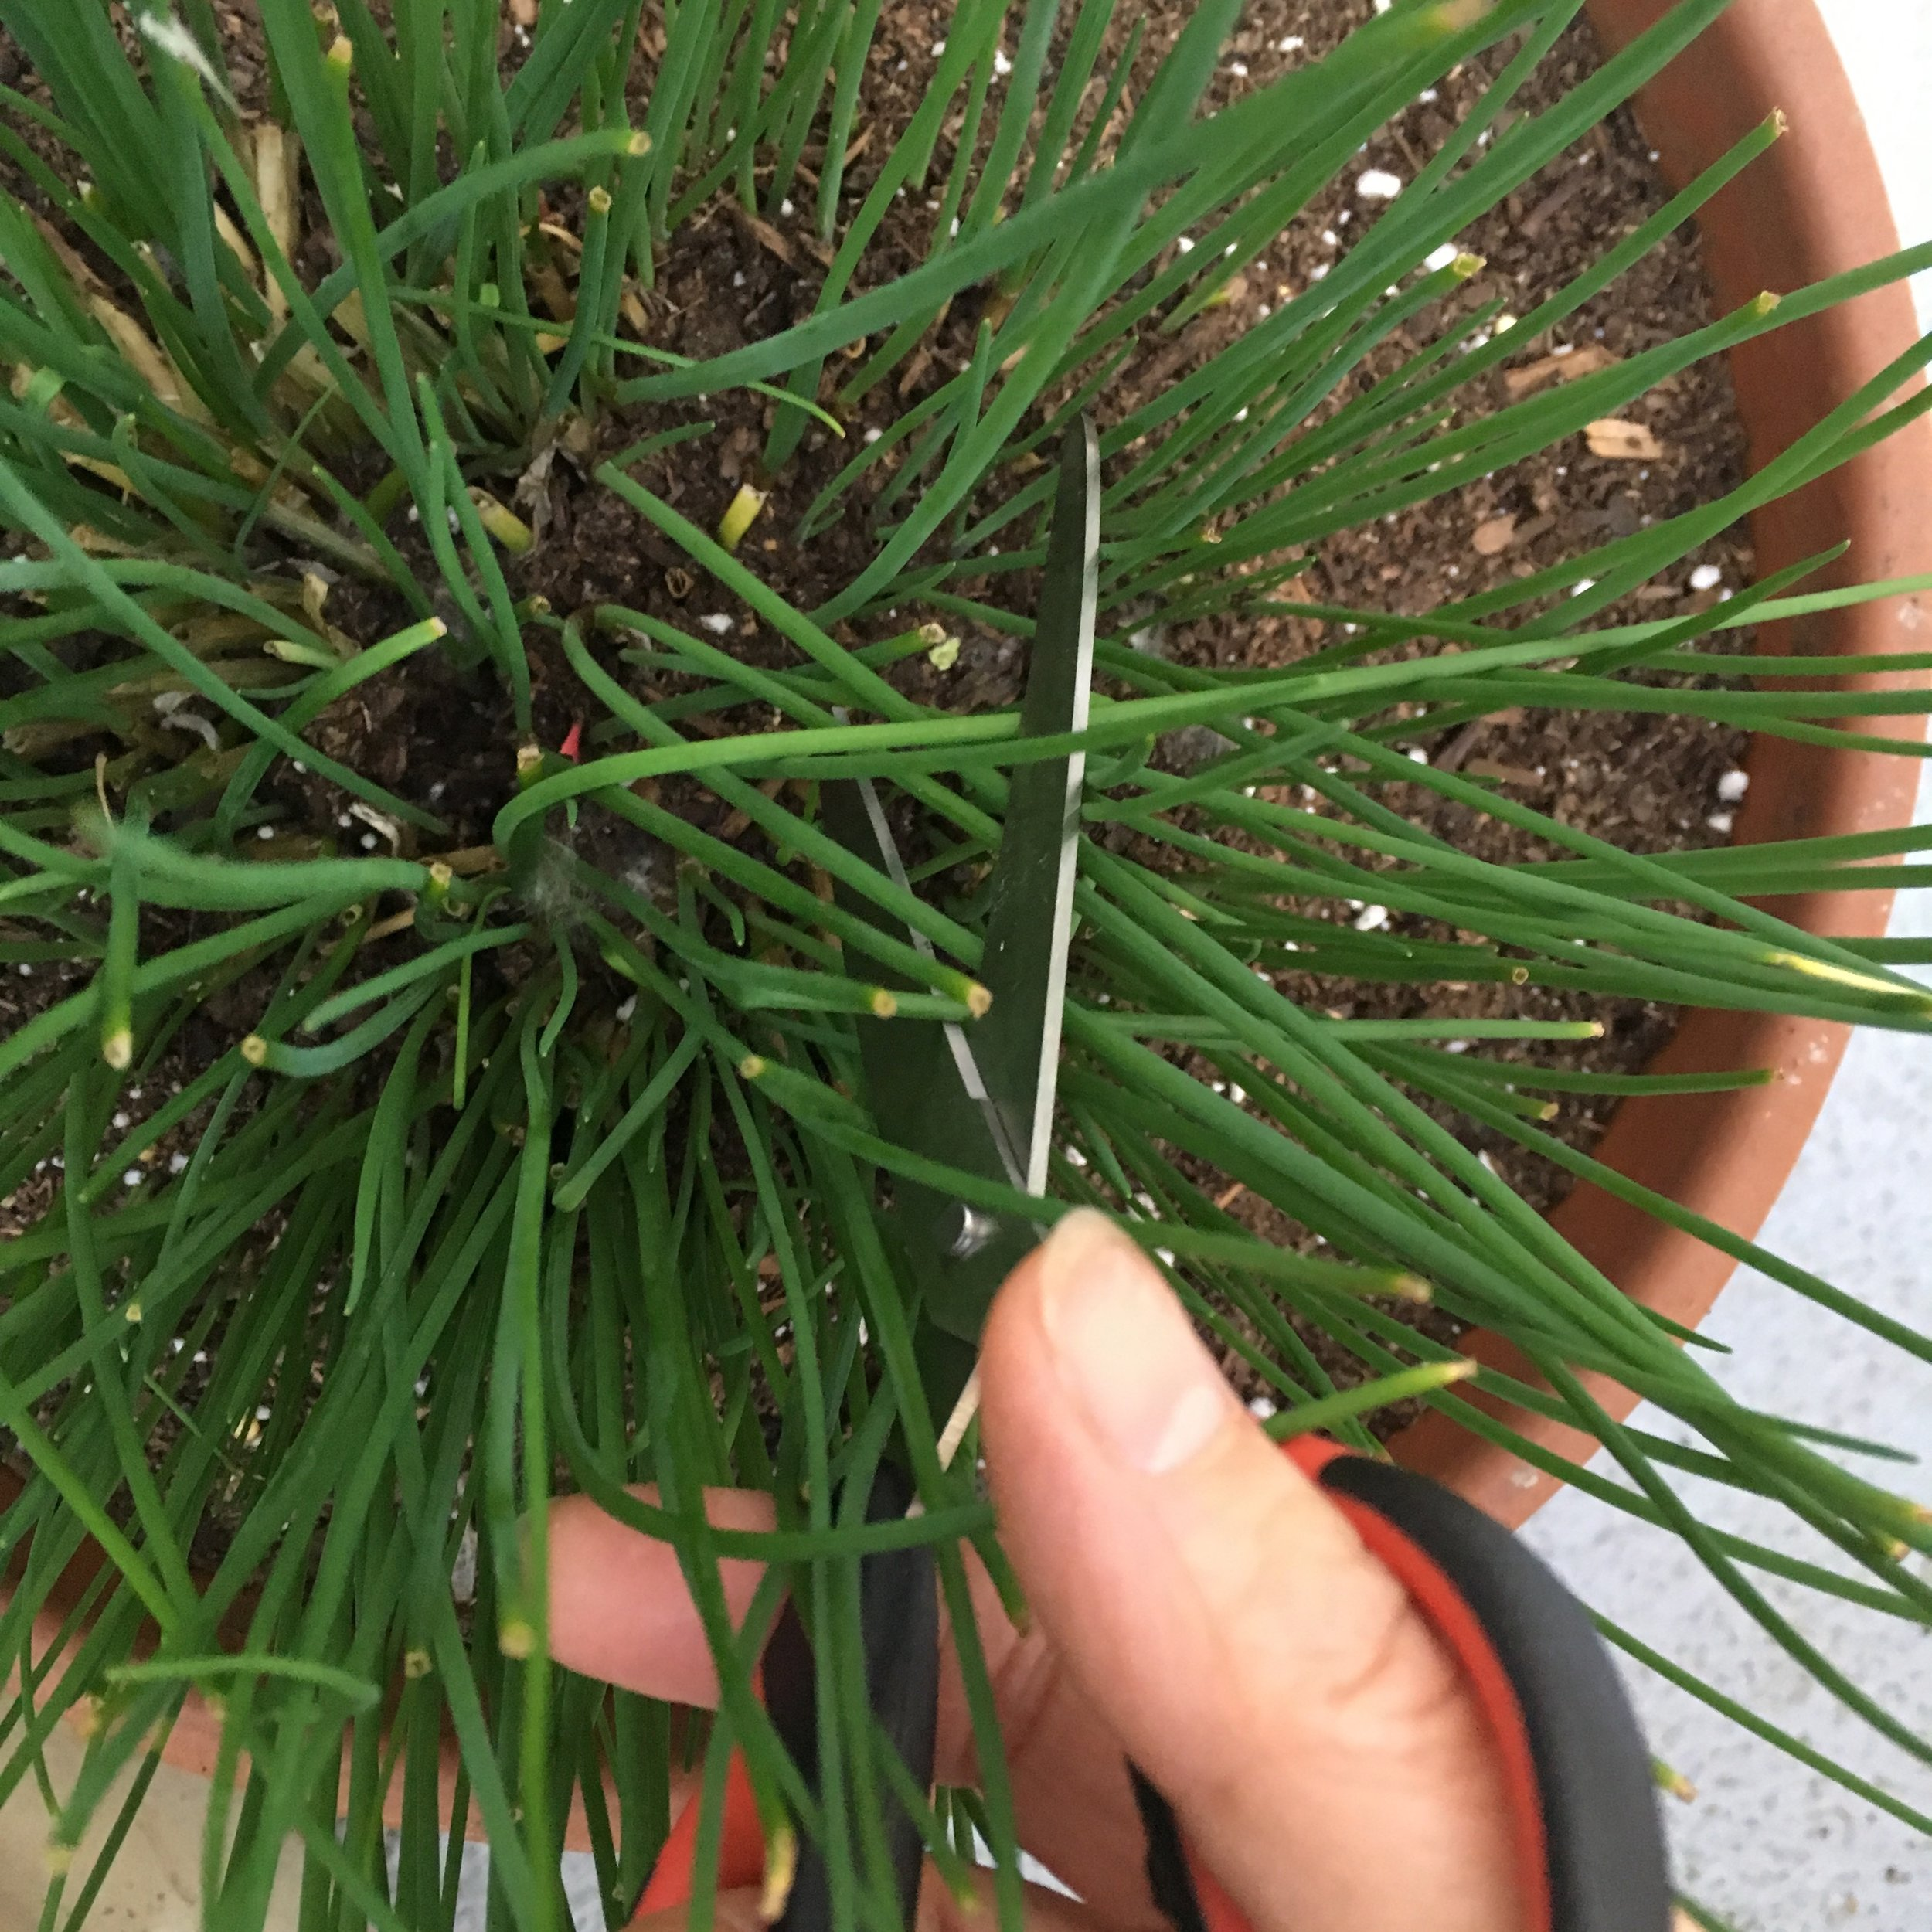 As a garden photographer for many years, I selected images that could highlight information and help recognize each herb. I'd like to share this practical guide of observations and experience with other curious gardeners and cooks beginning to grow and use their own herbs.  The book you will have in your hands is a friendly start to growing and using their herbs.